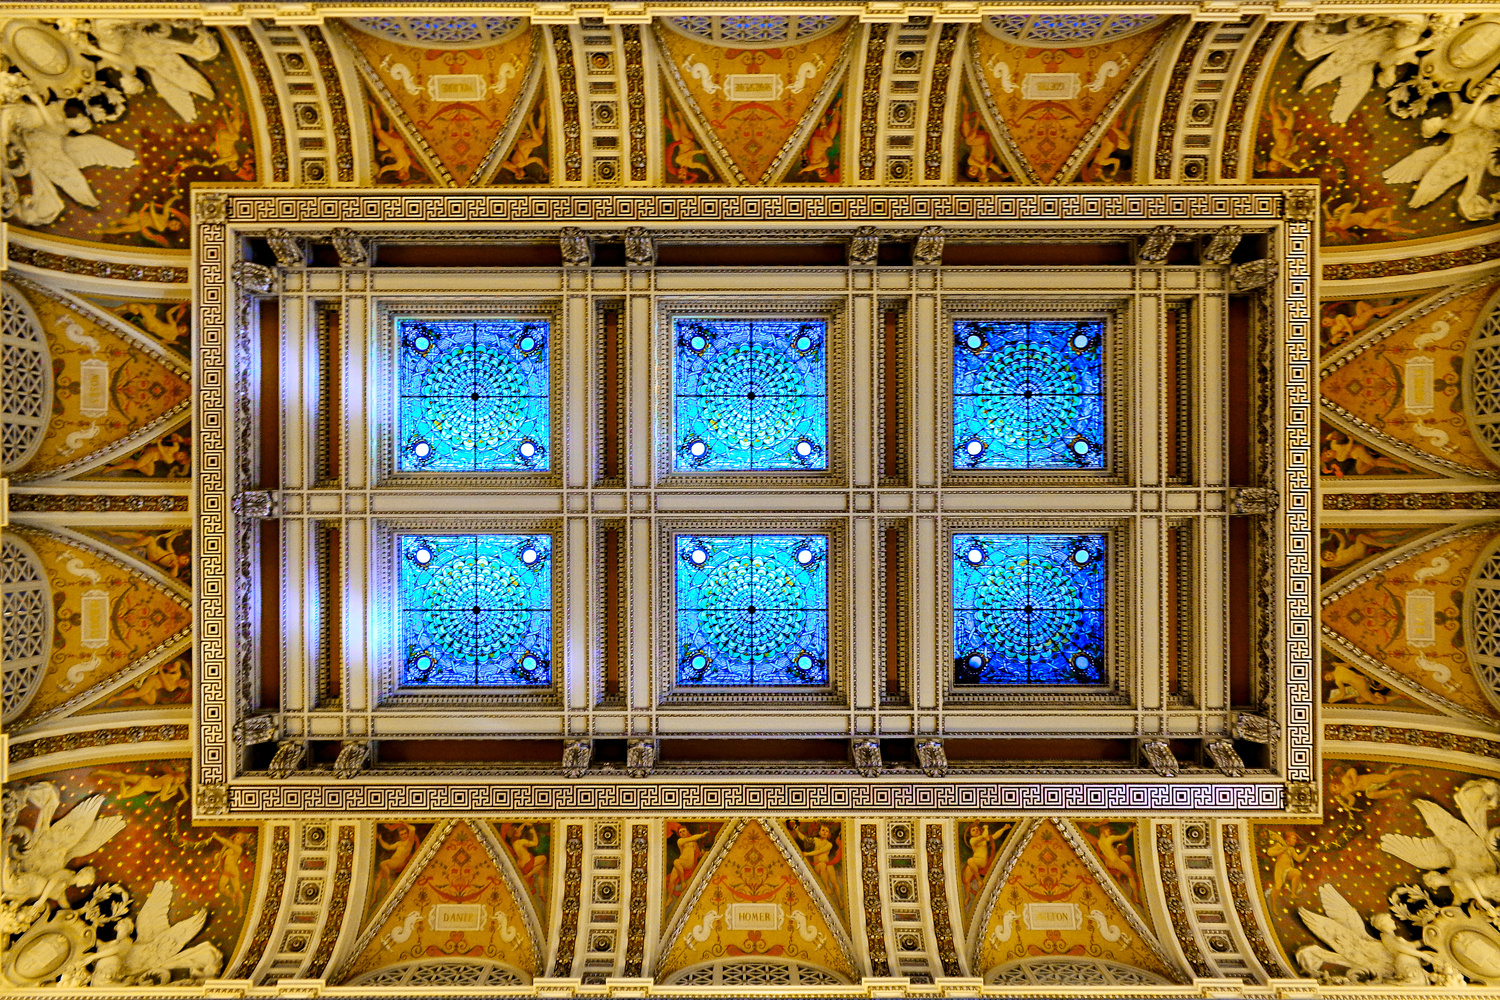 Skylight in the Library of Congress by Tong Thao